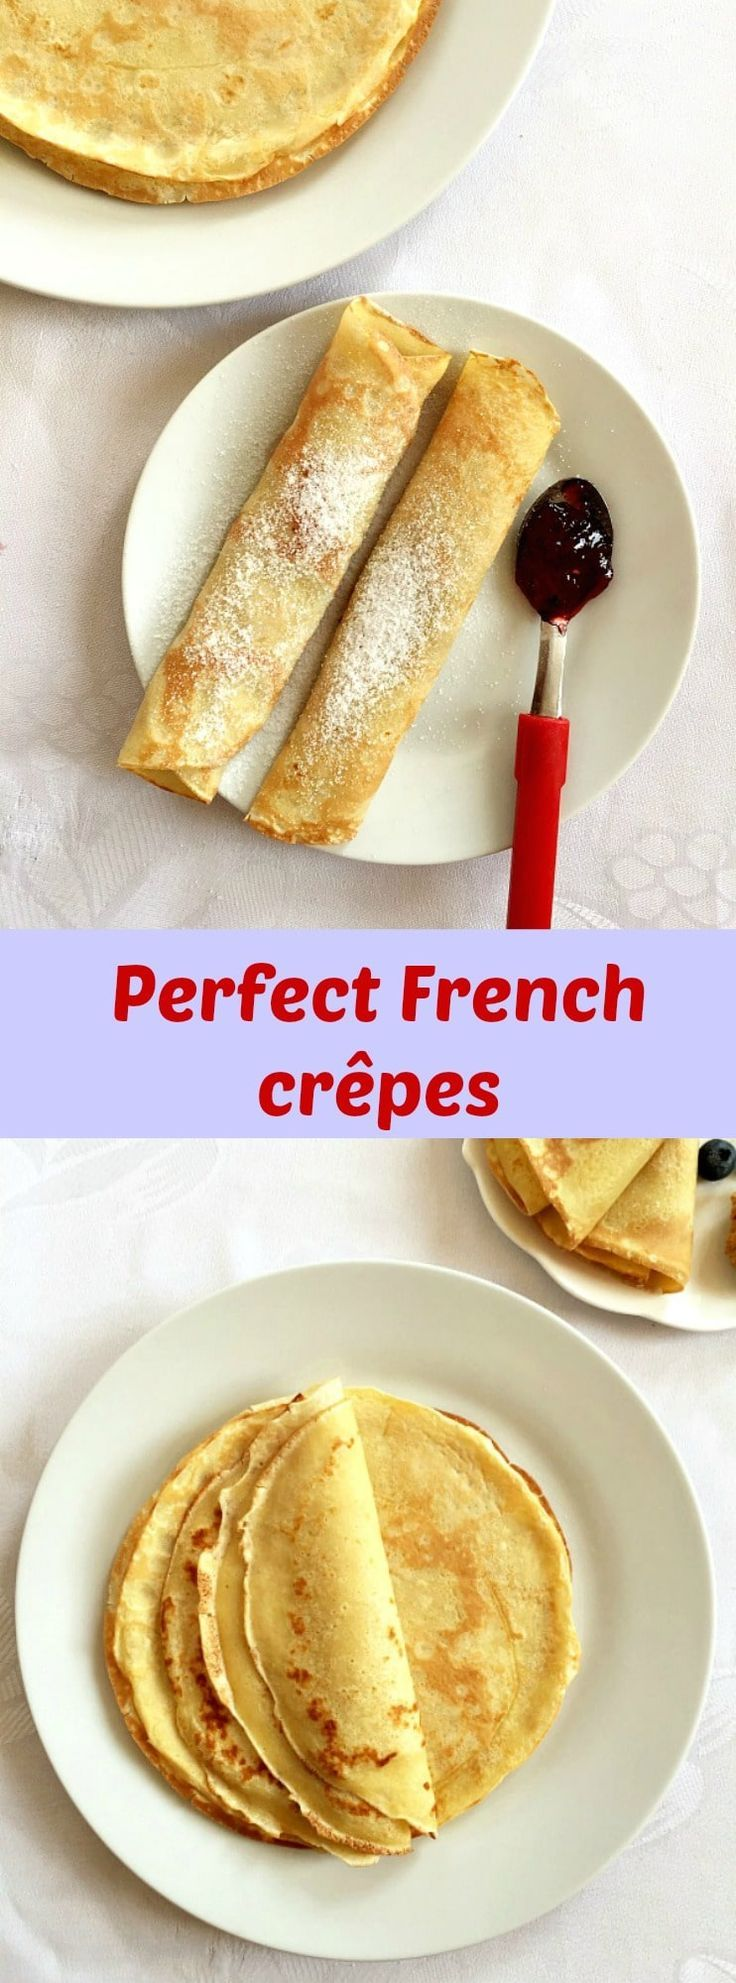 Start your day in style with a gourmet breakfast French